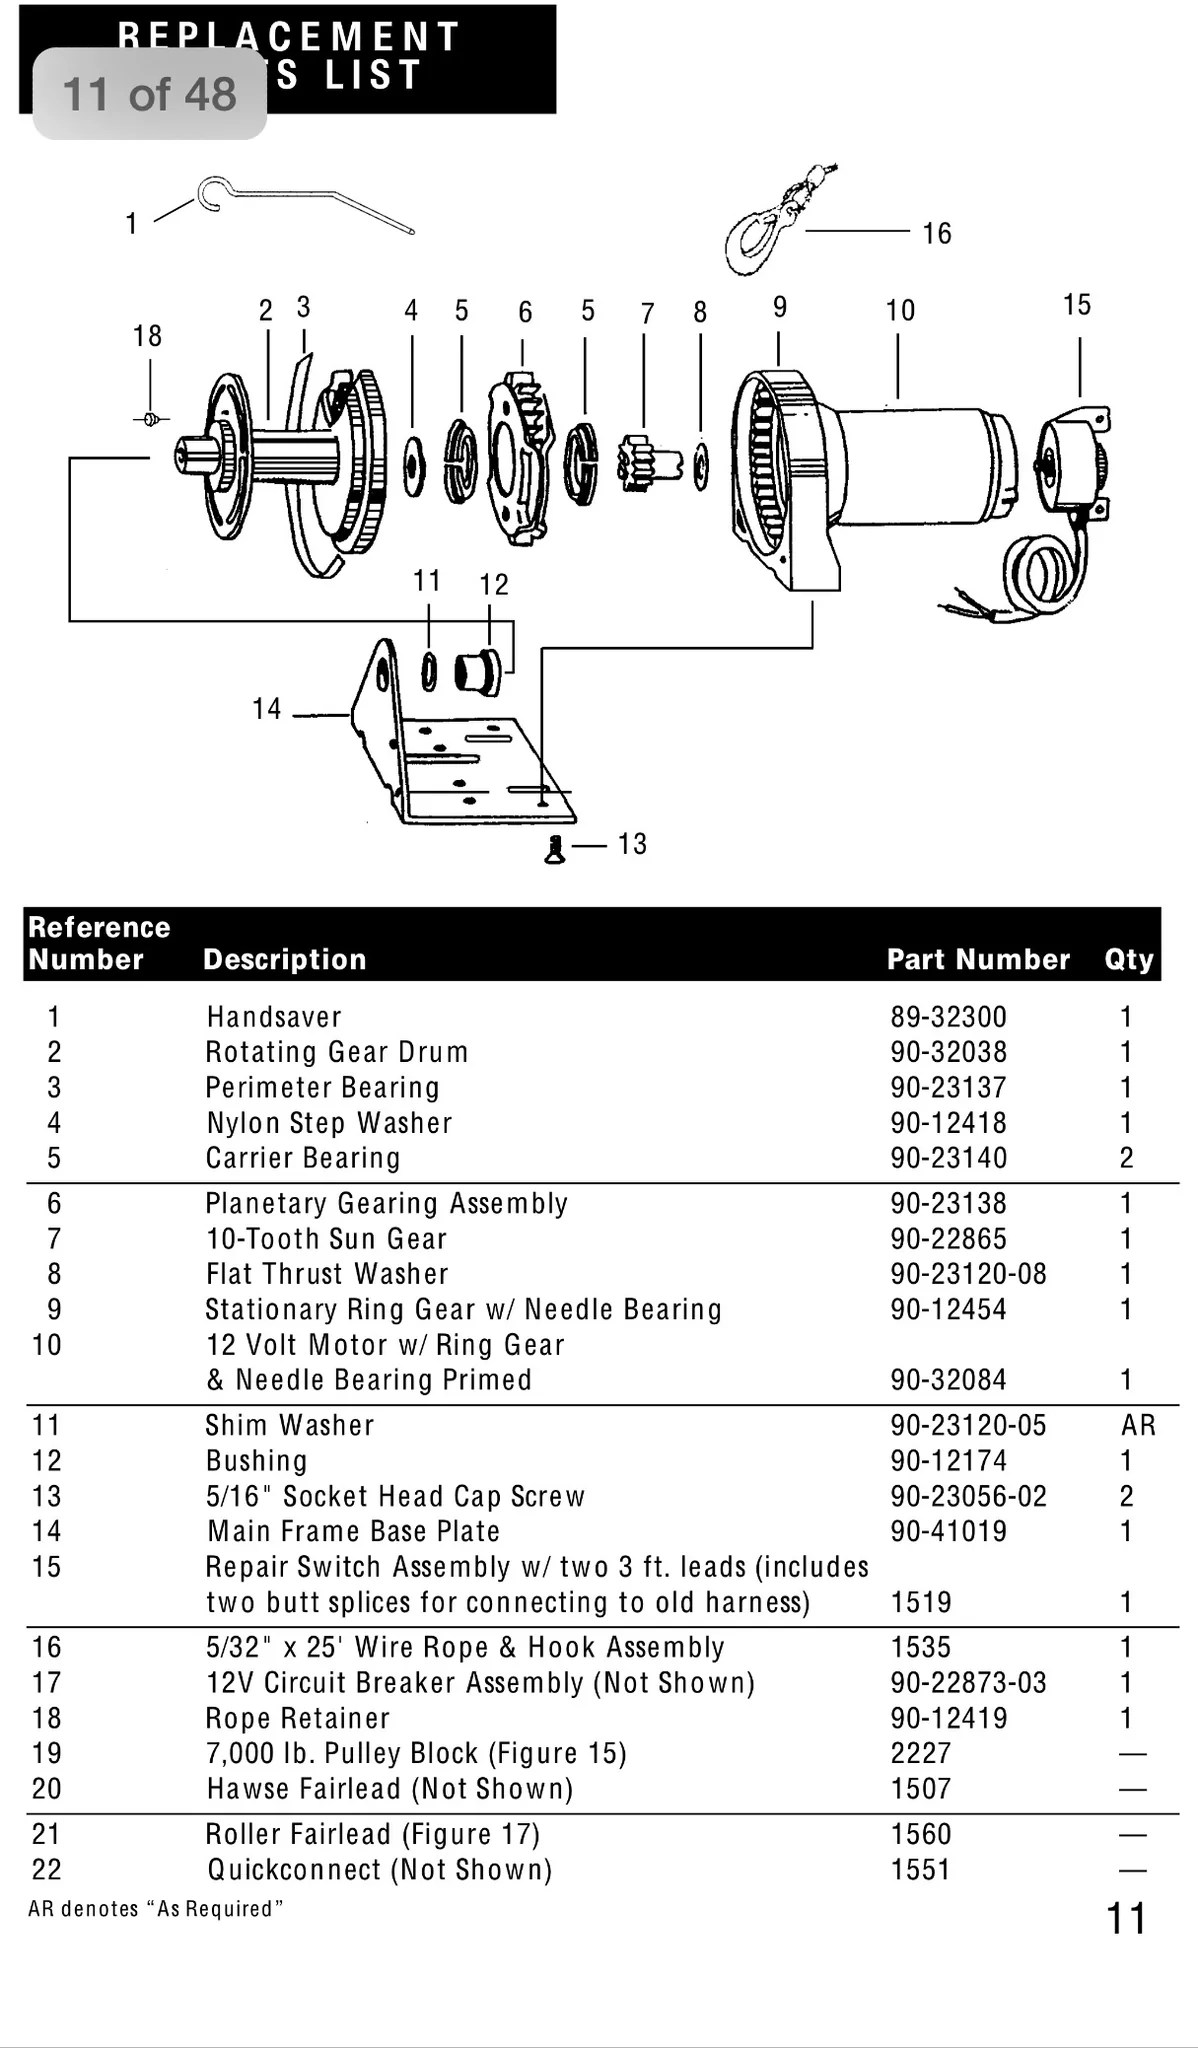 superwinch replacement motor for ex1 superwinch atv wiring diagram superwinch parts diagram [ 1198 x 2048 Pixel ]